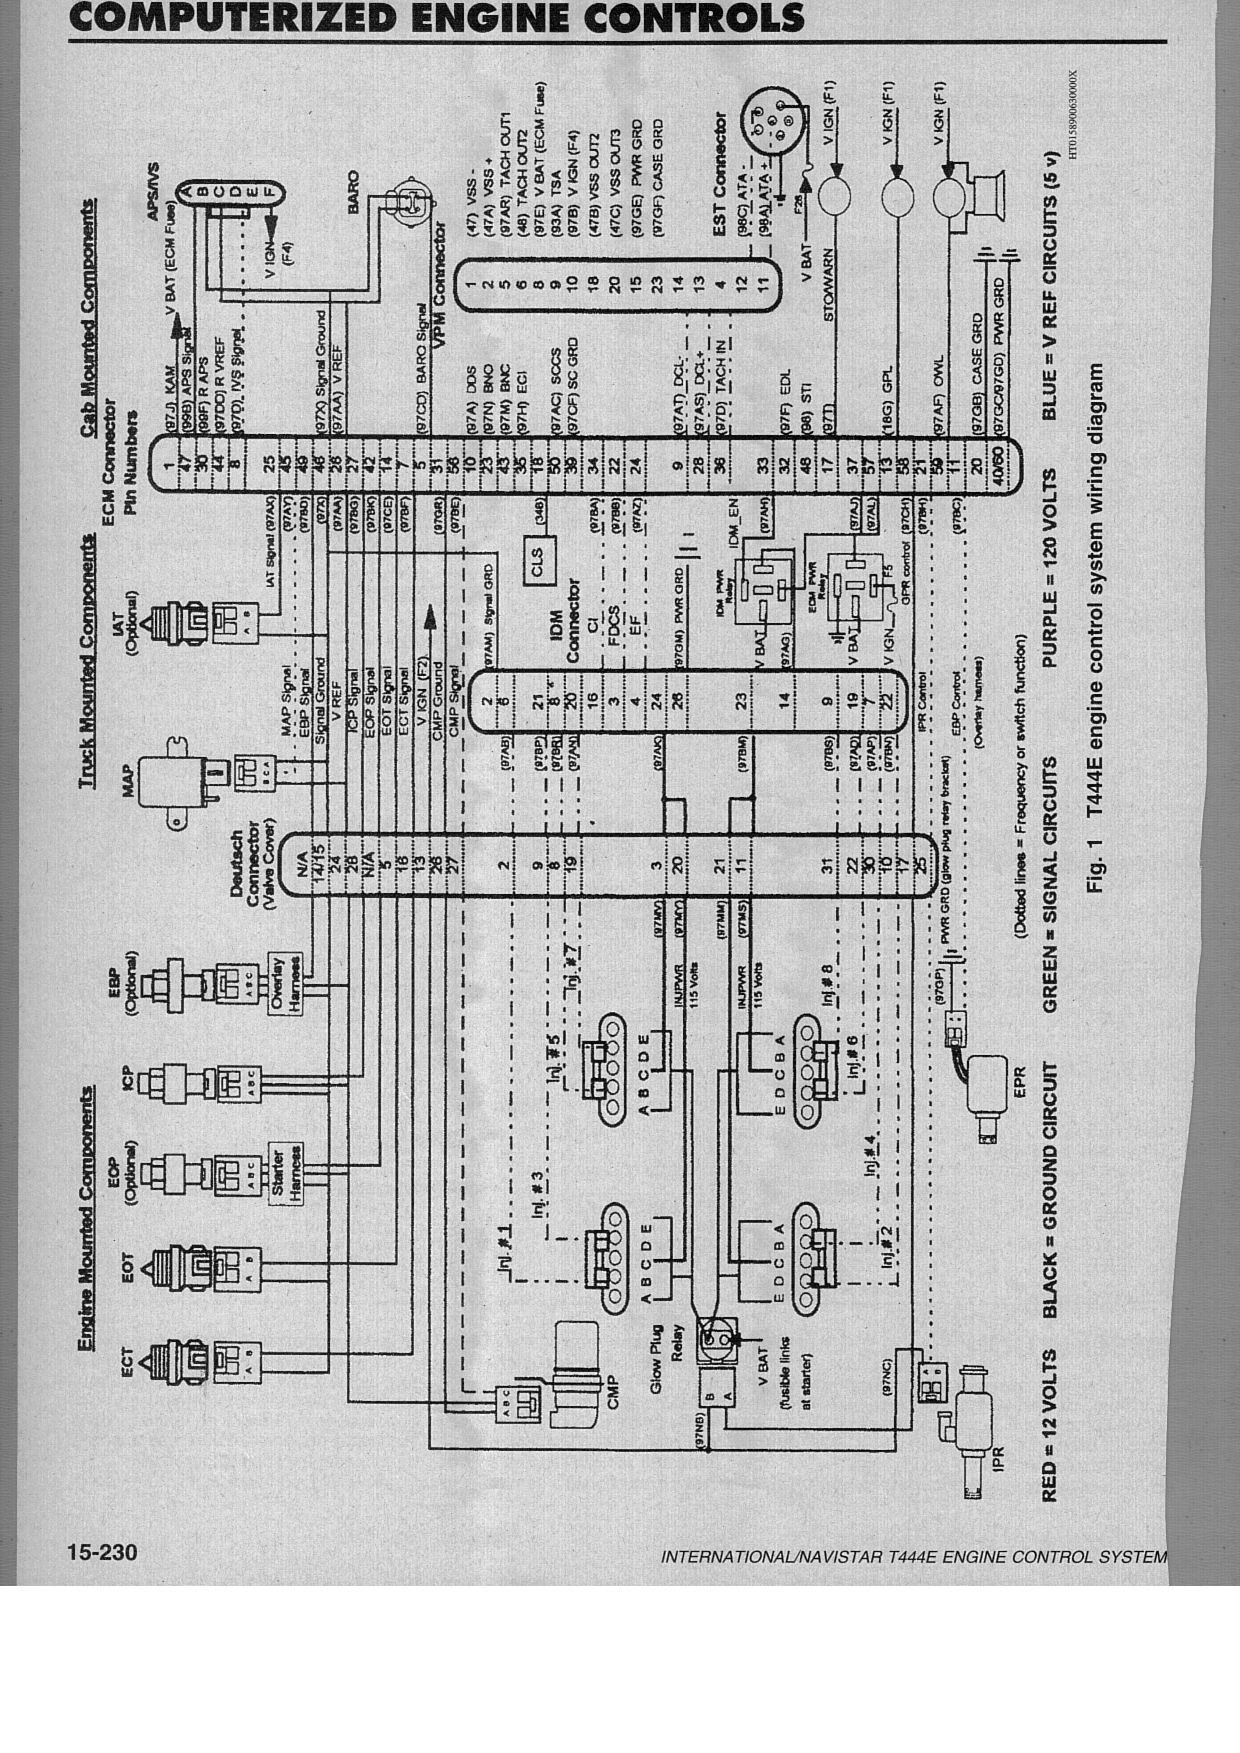 navistar wiring harness wiring library wiring diagrams for peterbilt trucks 2000 navistar wiring diagram [ 1240 x 1753 Pixel ]